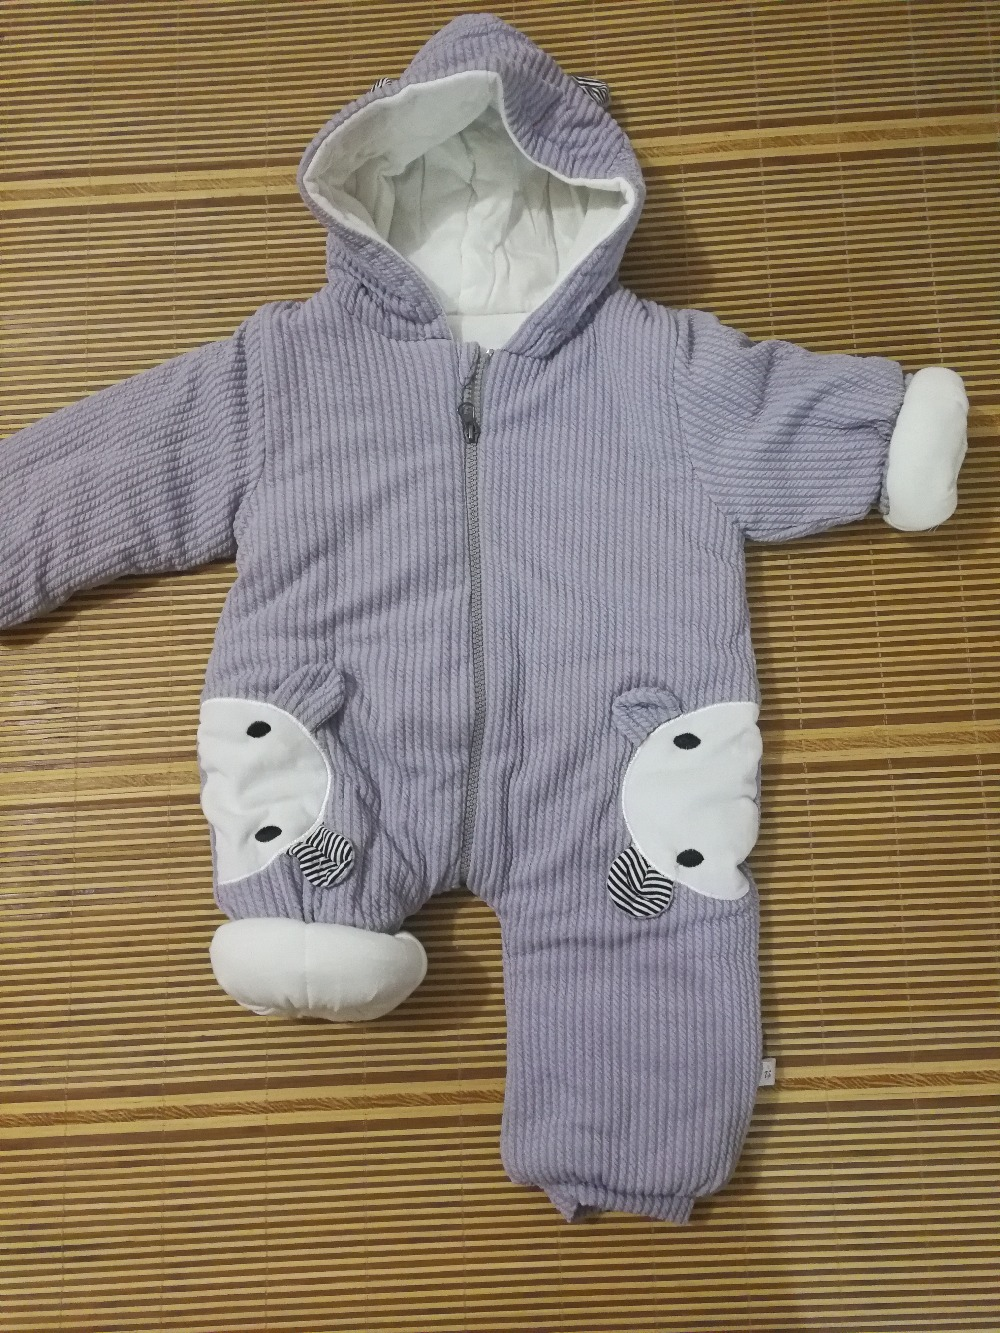 2019 New Russia Baby costume rompers Clothes cold Winter Boy Girl Garment Thicken Warm Comfortable Pure 2019 New Russia Baby costume rompers Clothes cold Winter Boy Girl Garment Thicken Warm Comfortable Pure Cotton coat jacket kids